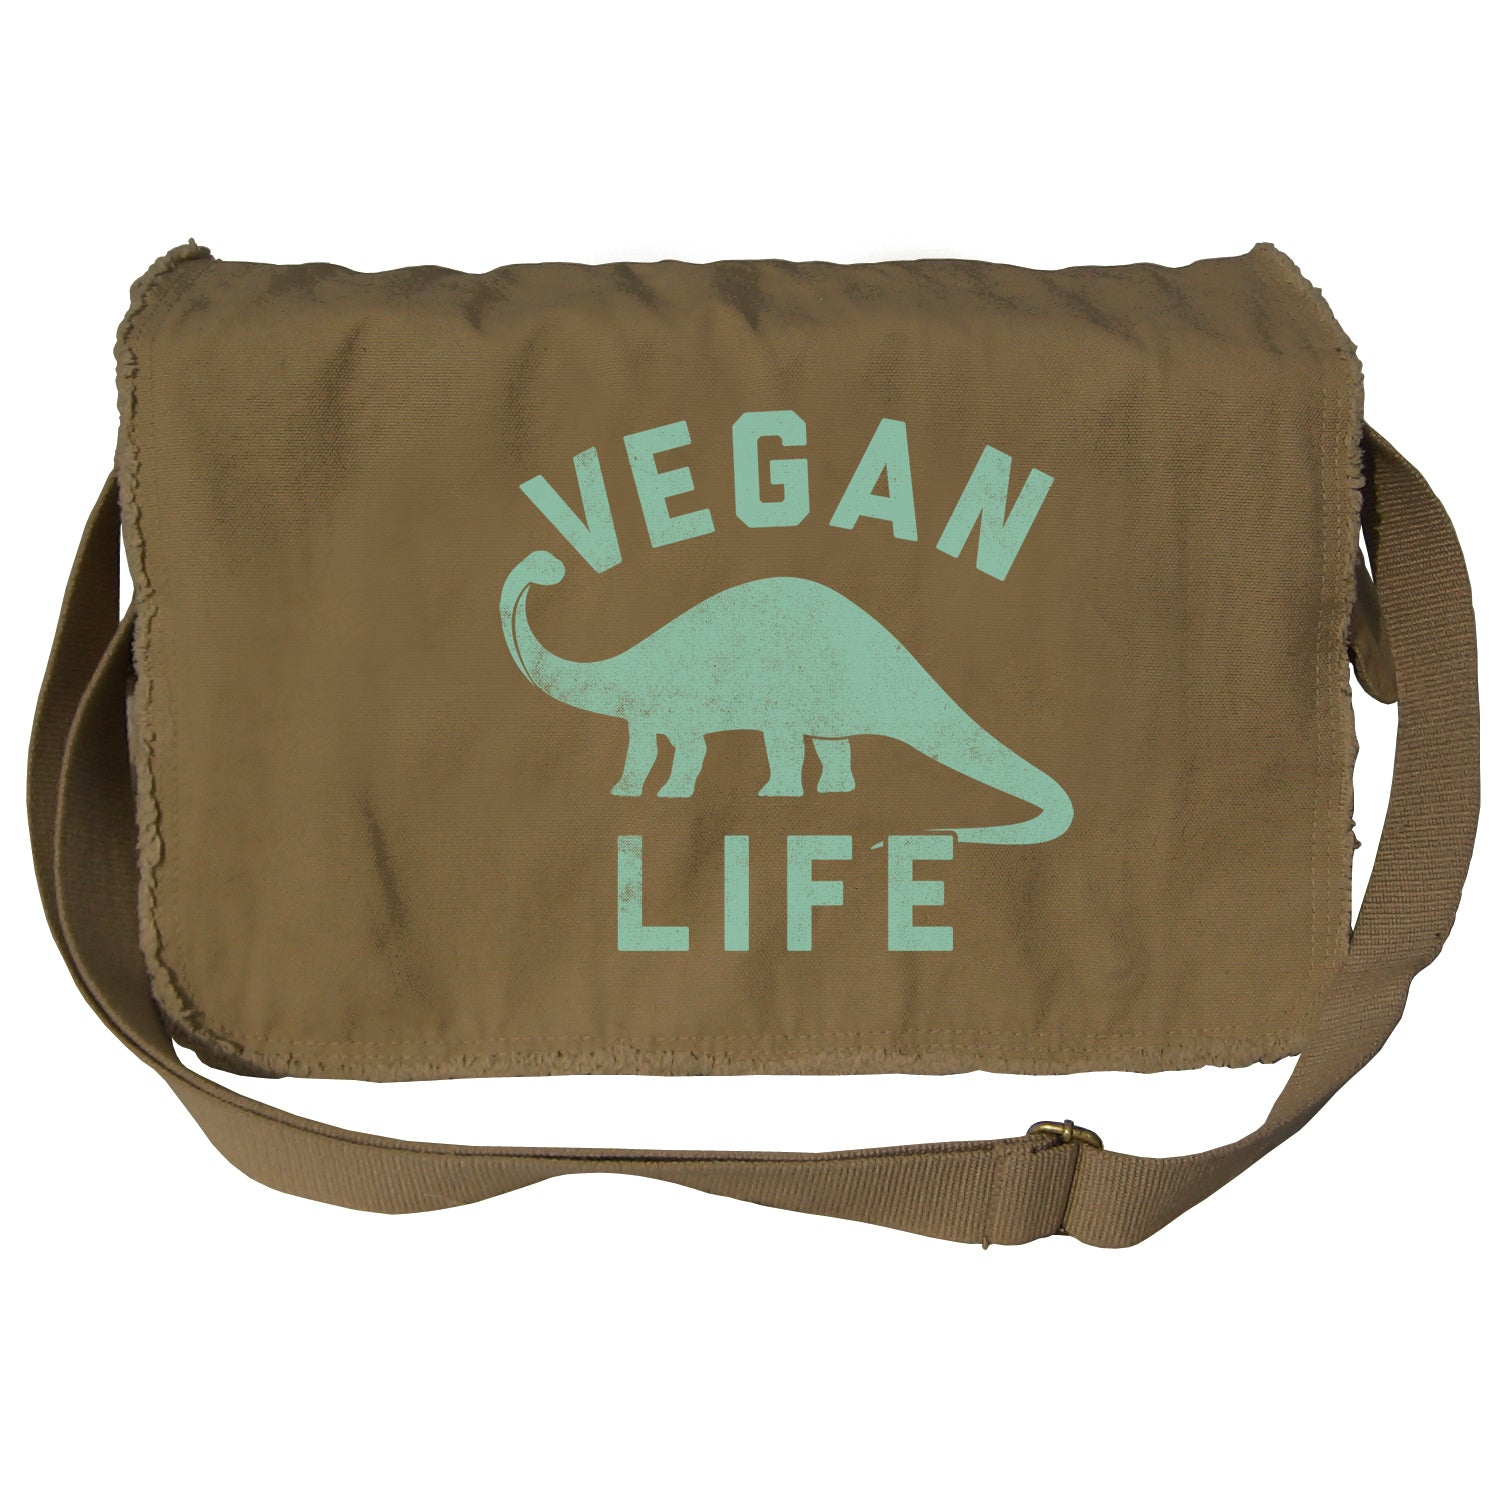 Brontosaurus Vegan Life Messenger Bag